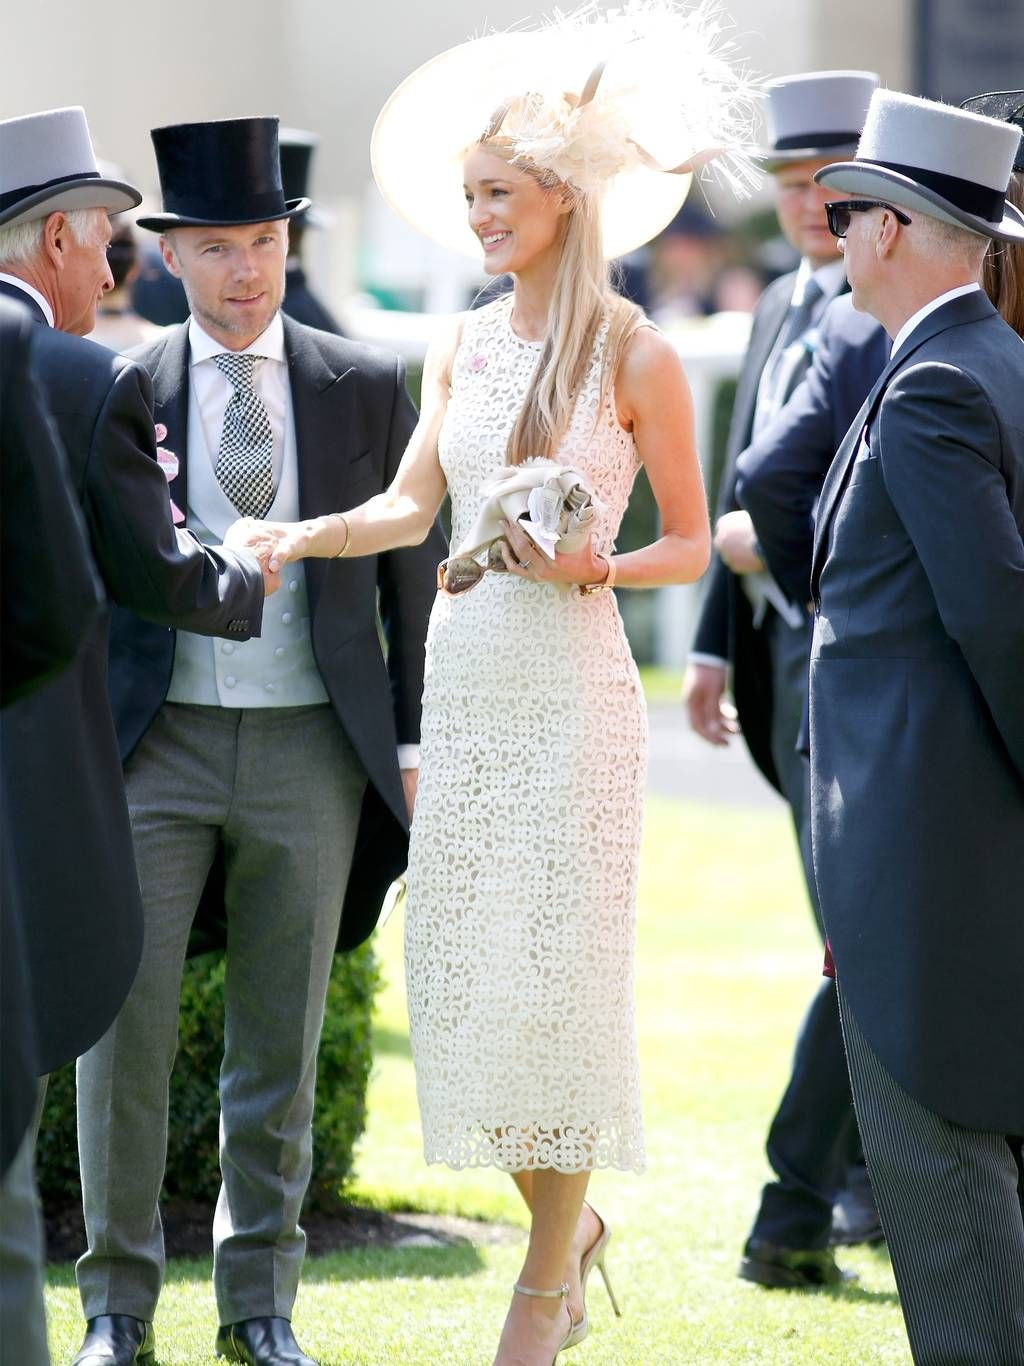 0289da2f66d5e Royal Ascot fashion - the good, the bad and the frightening. | Talk ...